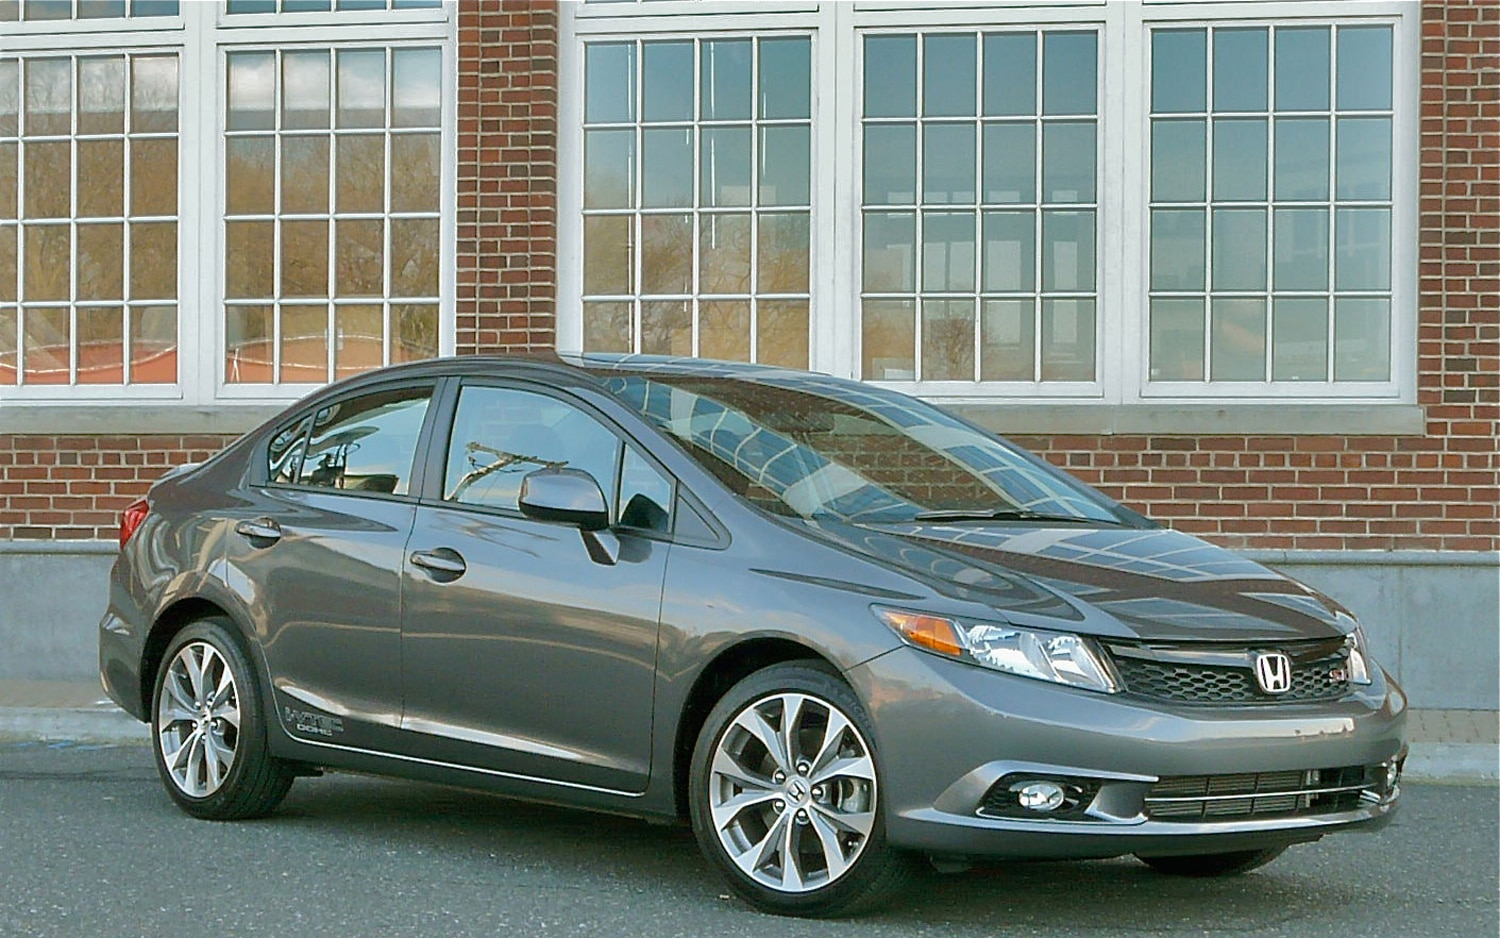 2012 Honda Civic Si Front Right Side View1